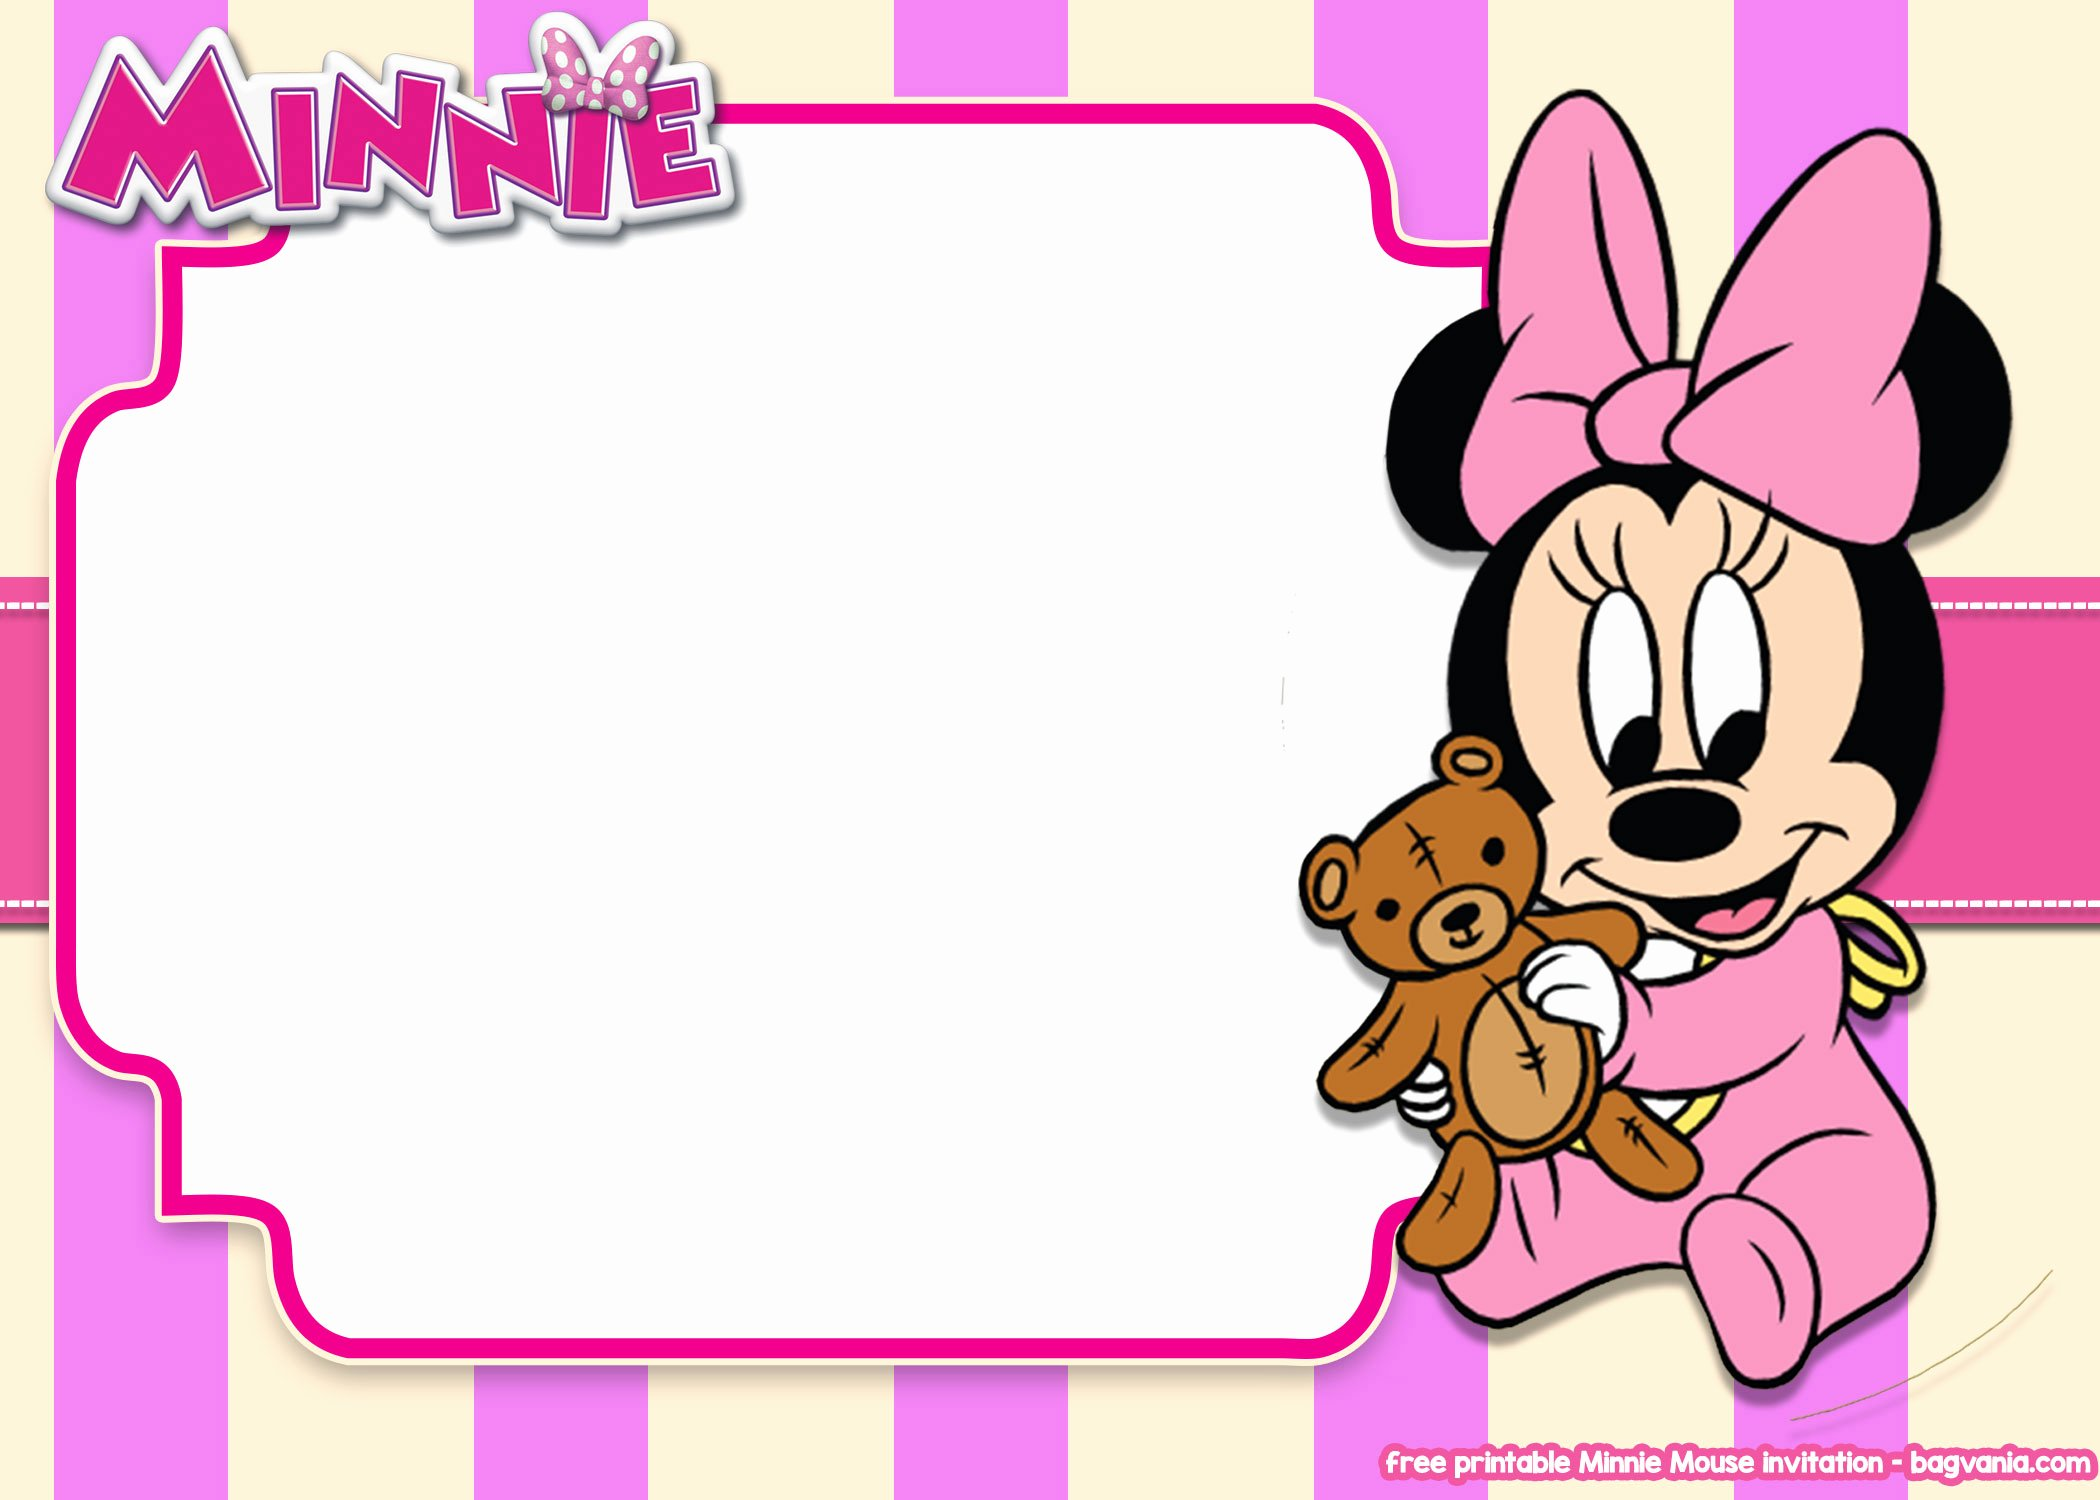 Minnie Mouse Blank Invitation Luxury 14 Free Printable Minnie Mouse All Ages Invitation